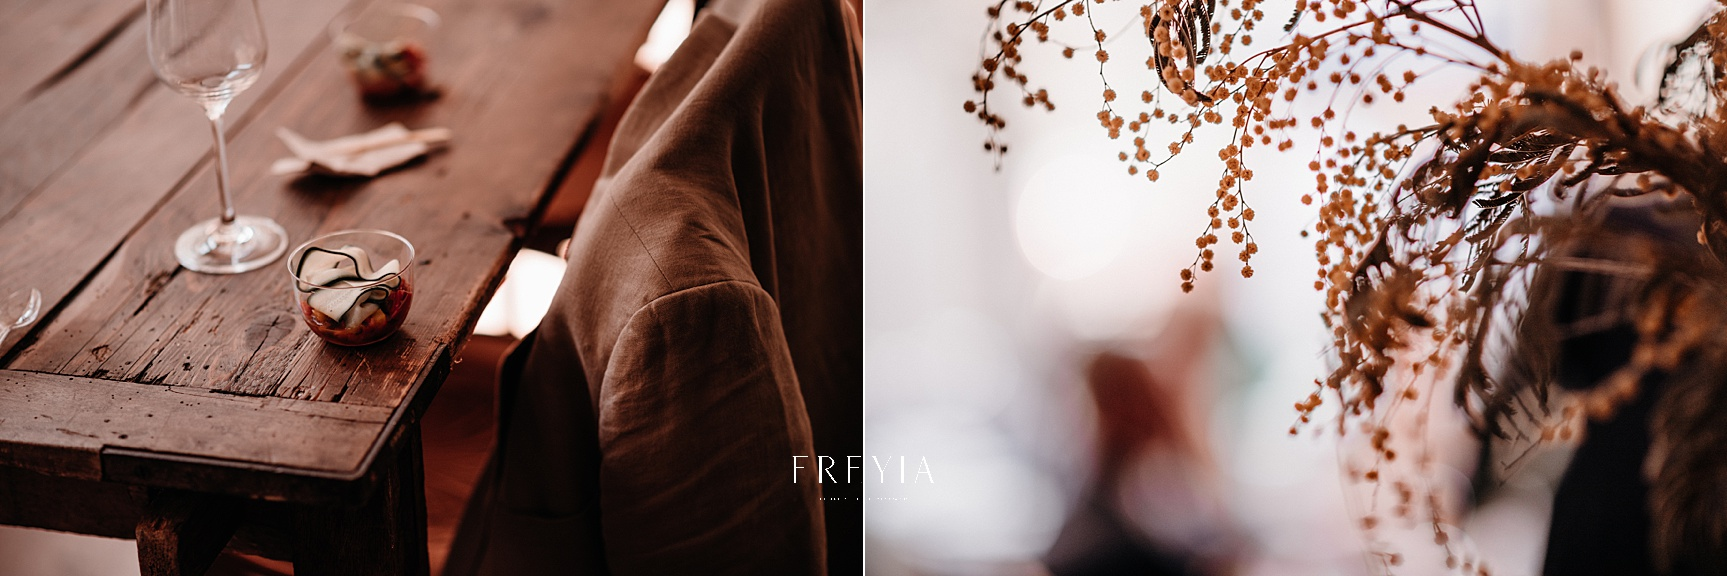 P + F |  mariage reportage alternatif moody intime vintage naturel boho boheme |  PHOTOGRAPHE mariage PARIS france destination  | FREYIA photography_-158.jpg